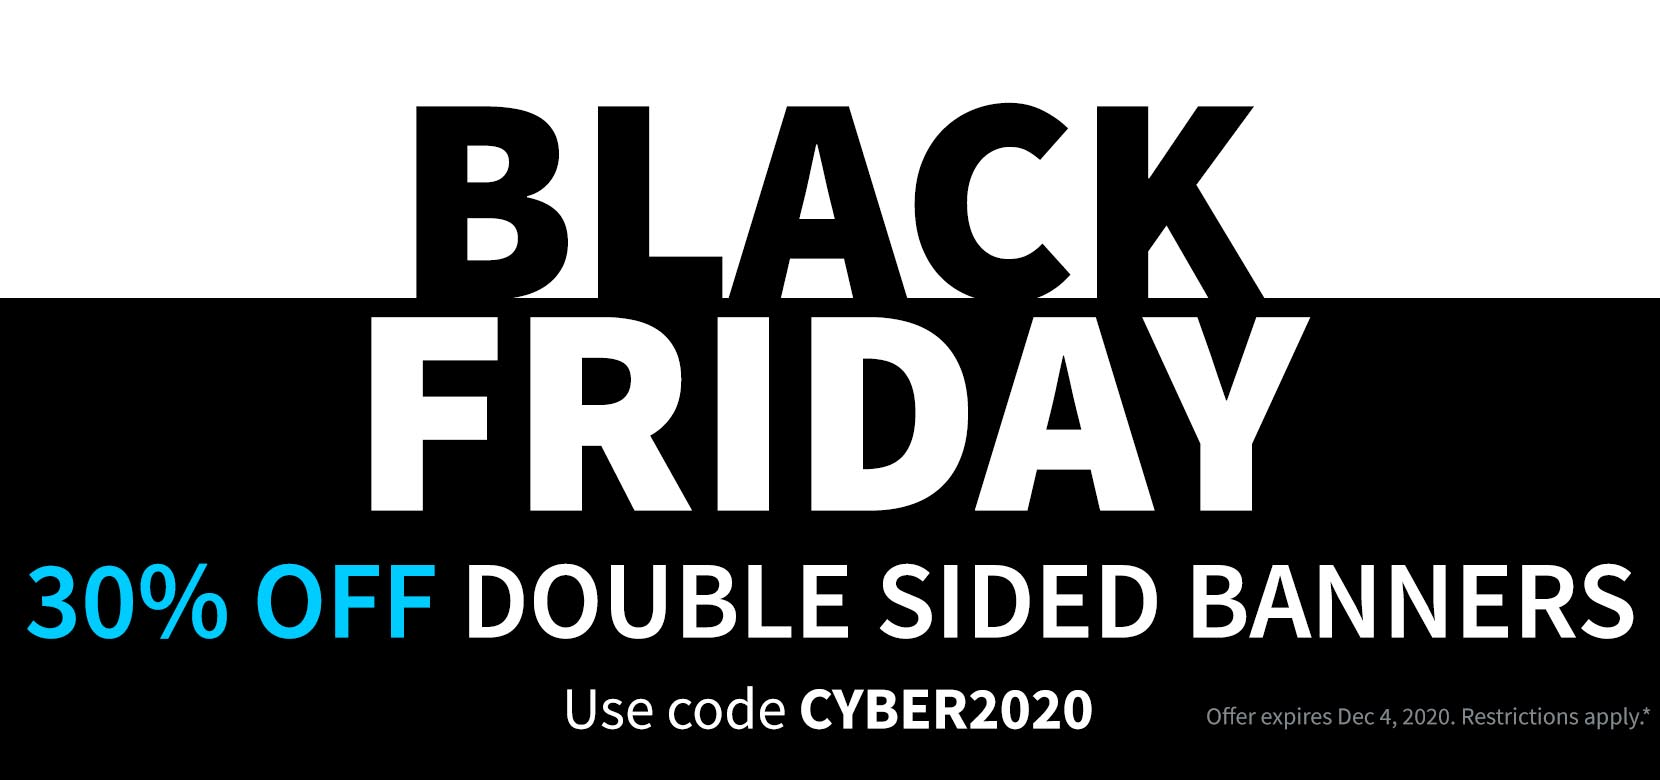 Black Friday CYBER2020 Double Sided Banners